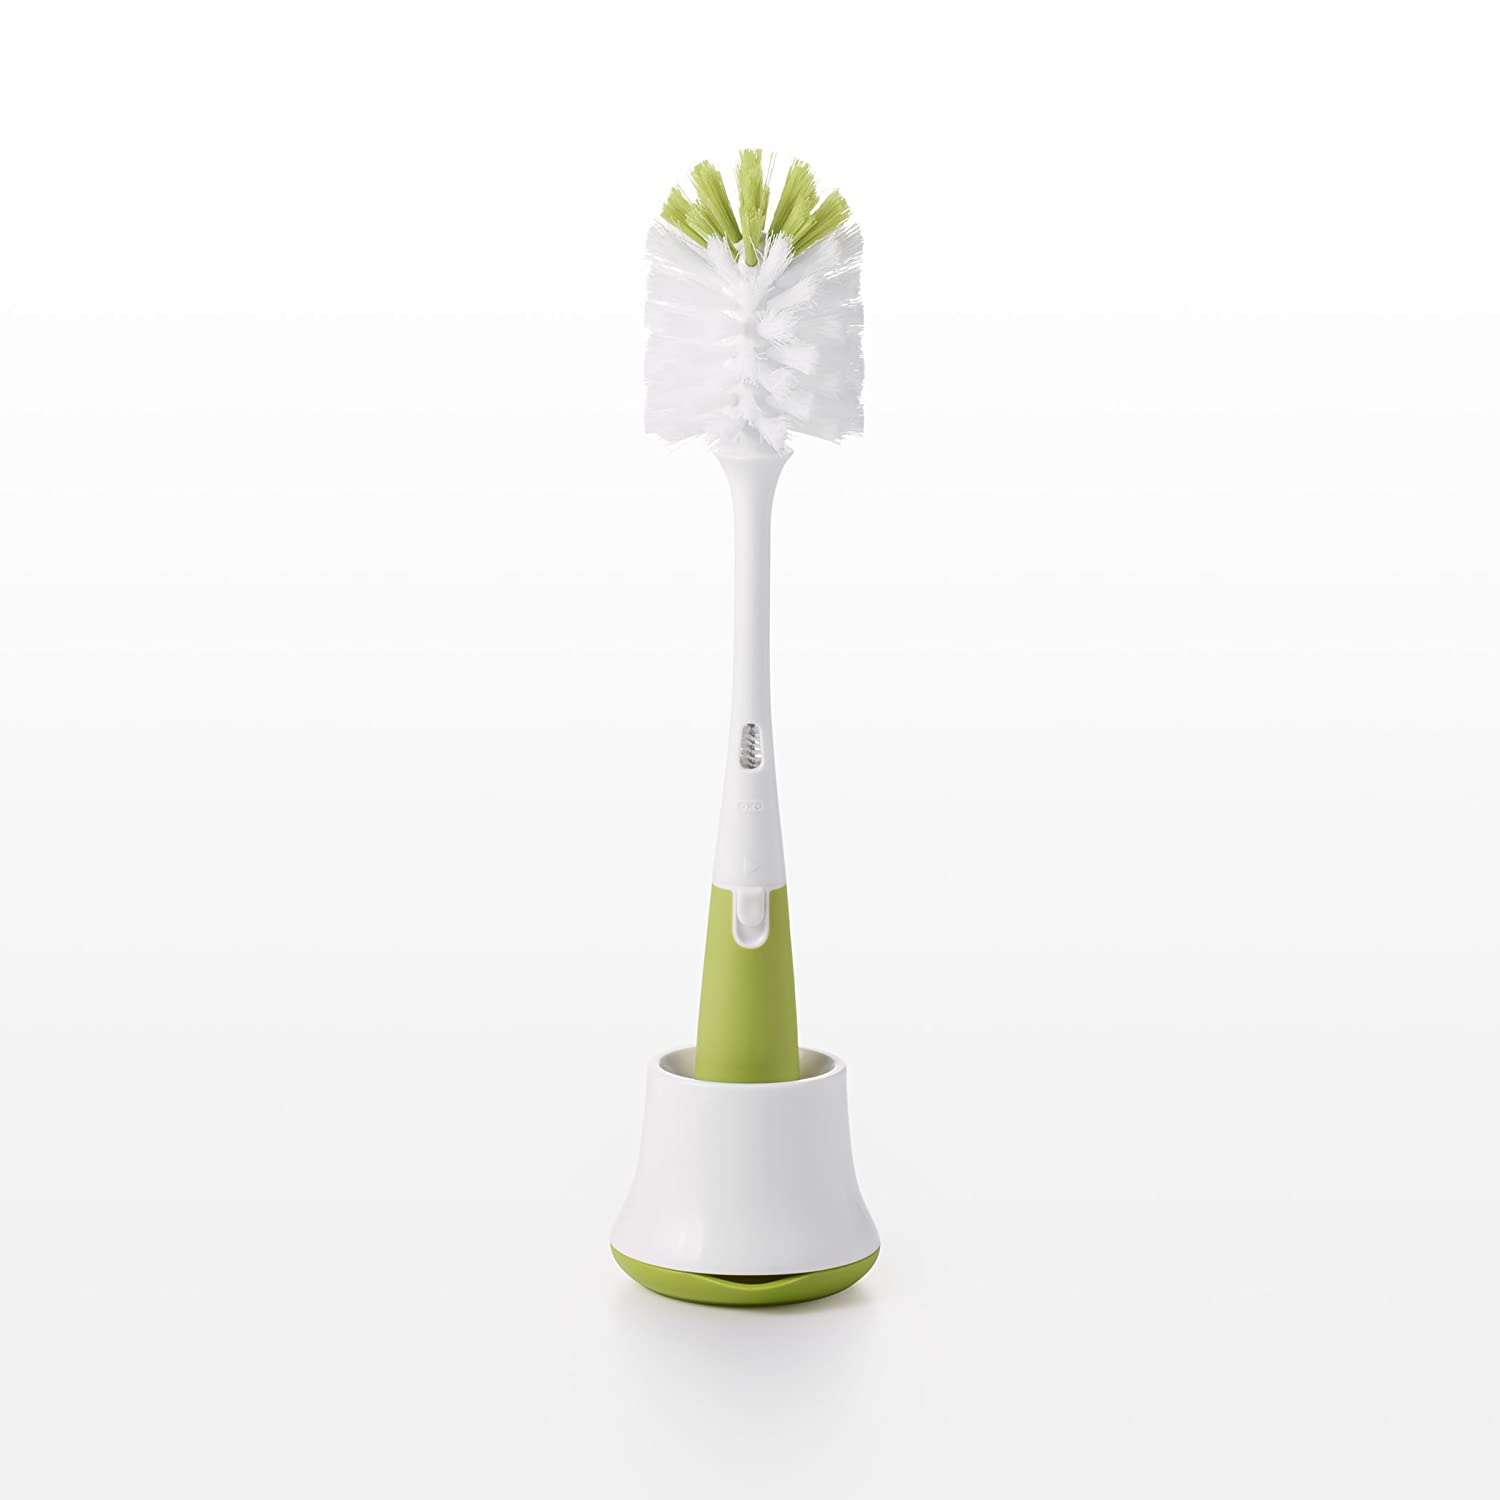 OXO Tot Bottle Brush with Nipple Cleaner and Stand, Green 6207800